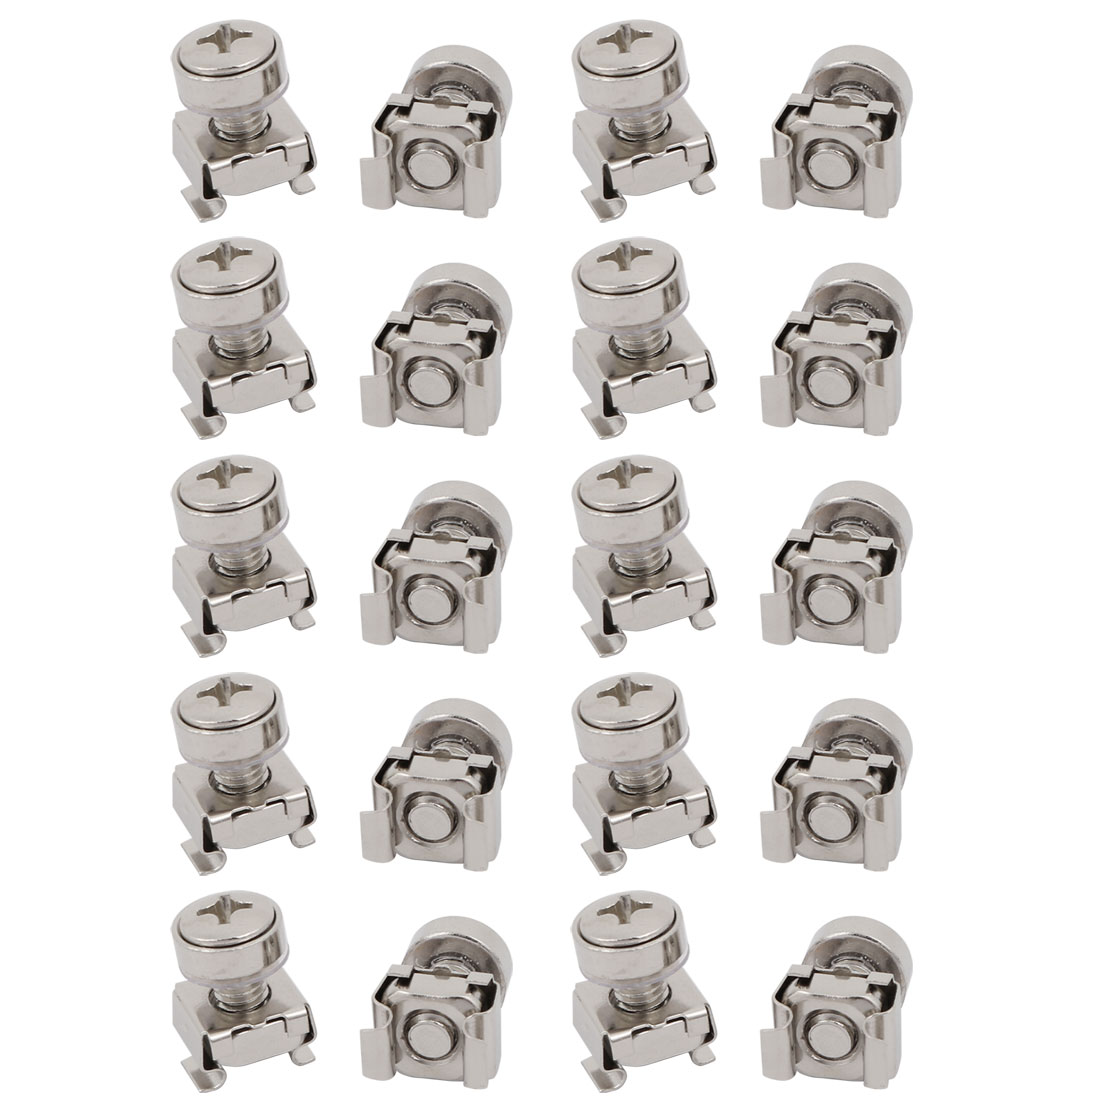 20pcs M6x16mm Carbon Steel Cage Nuts w Screws Washers for Server Rack Cabinet